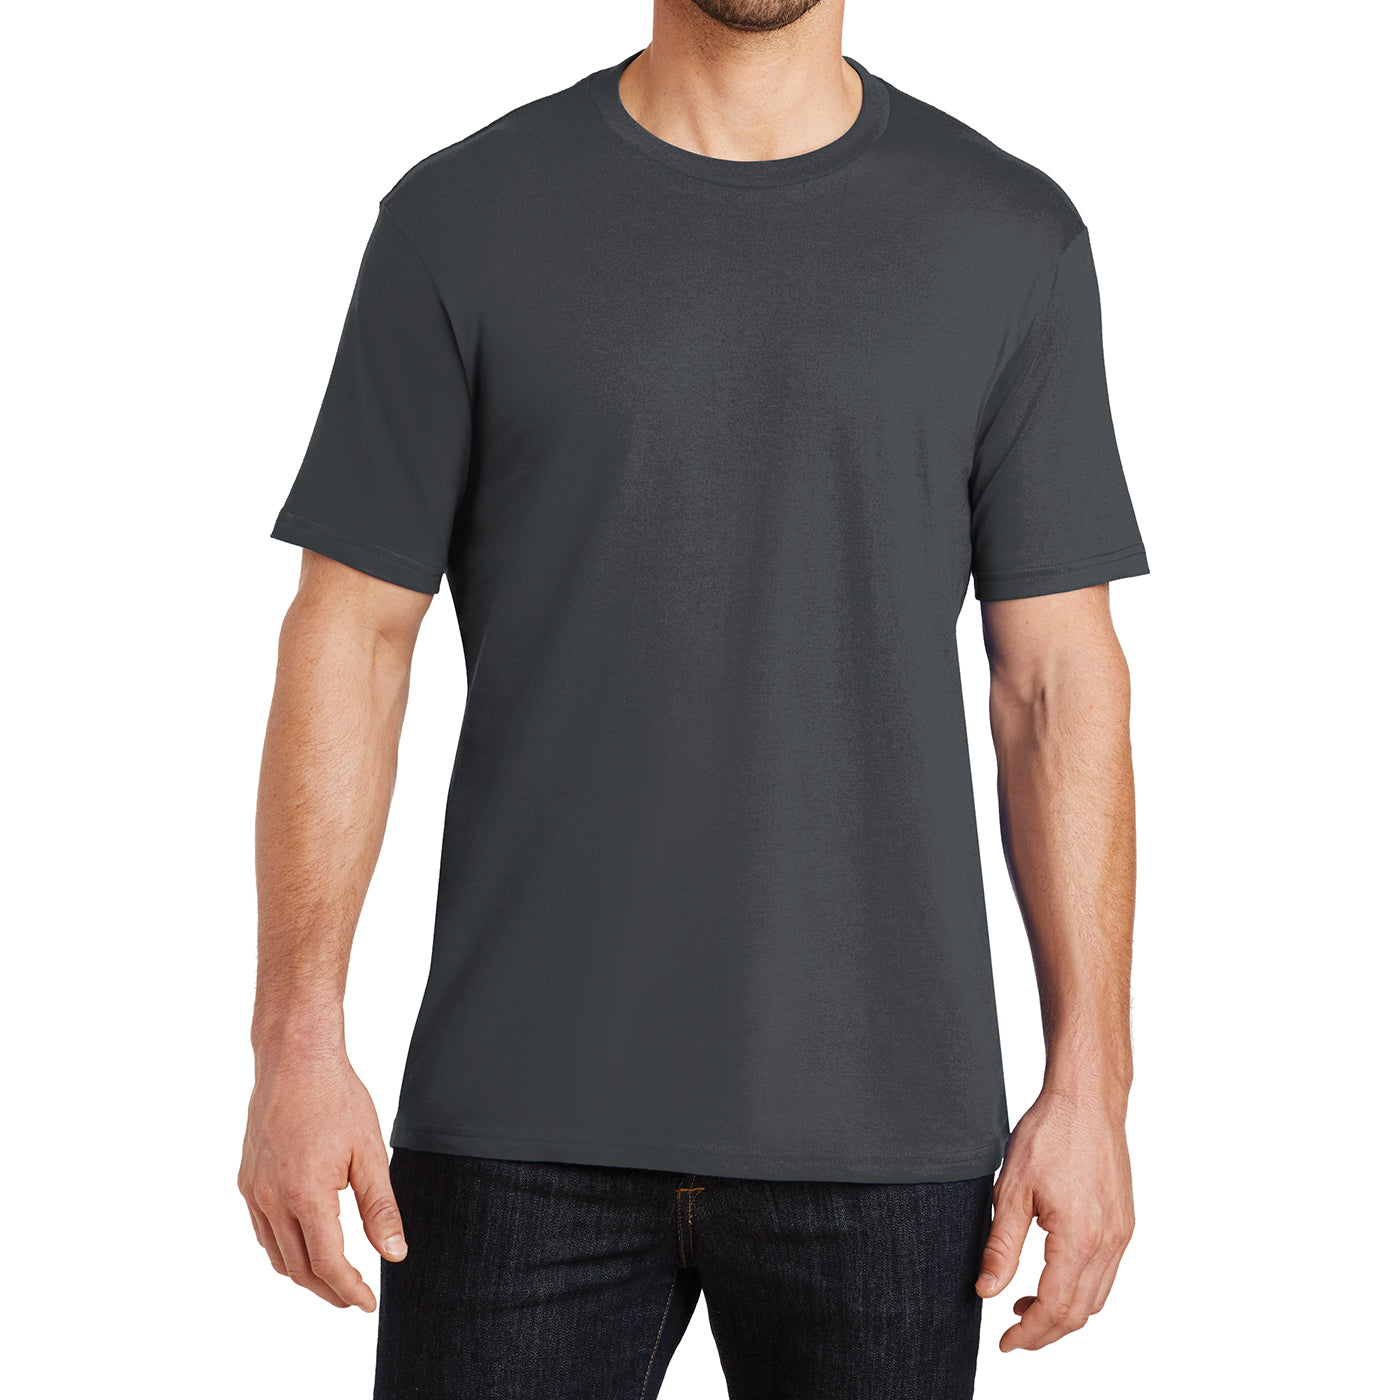 Mens Perfect Weight Crew Tee - Bright Charcoal - Front